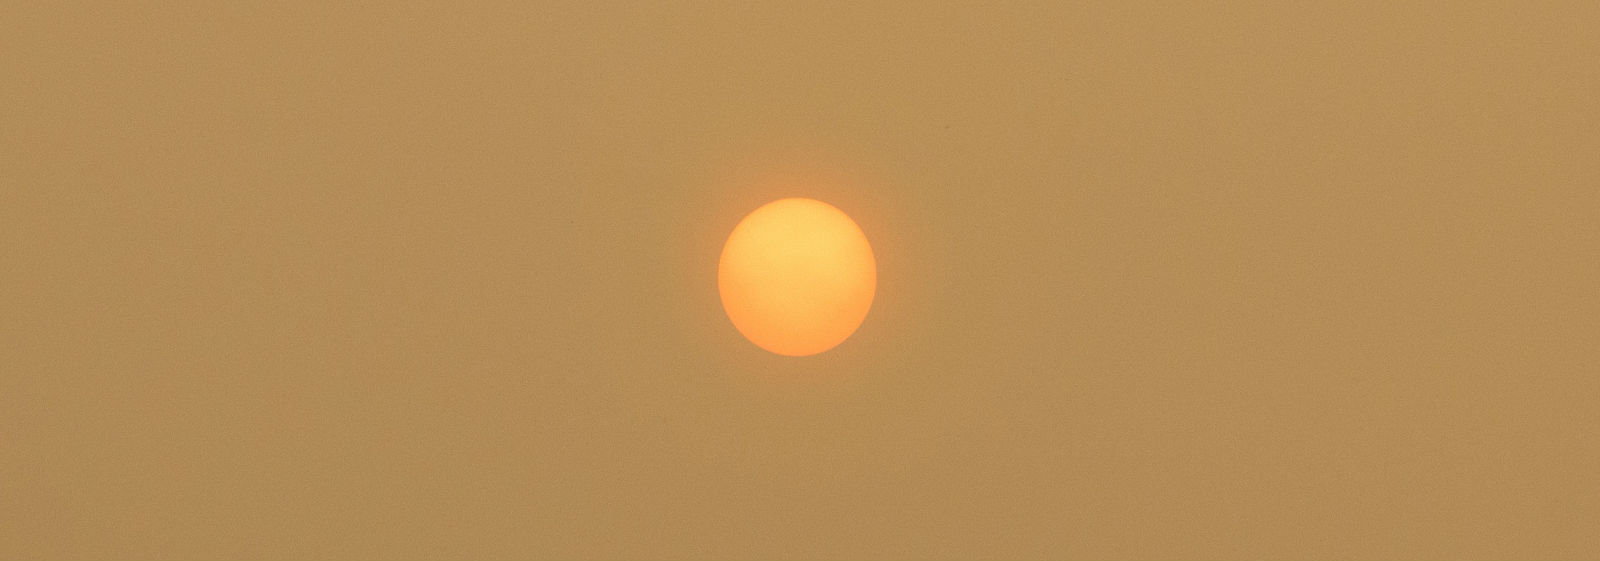 Sun seen from Sebangau national park in Central Kalimantan